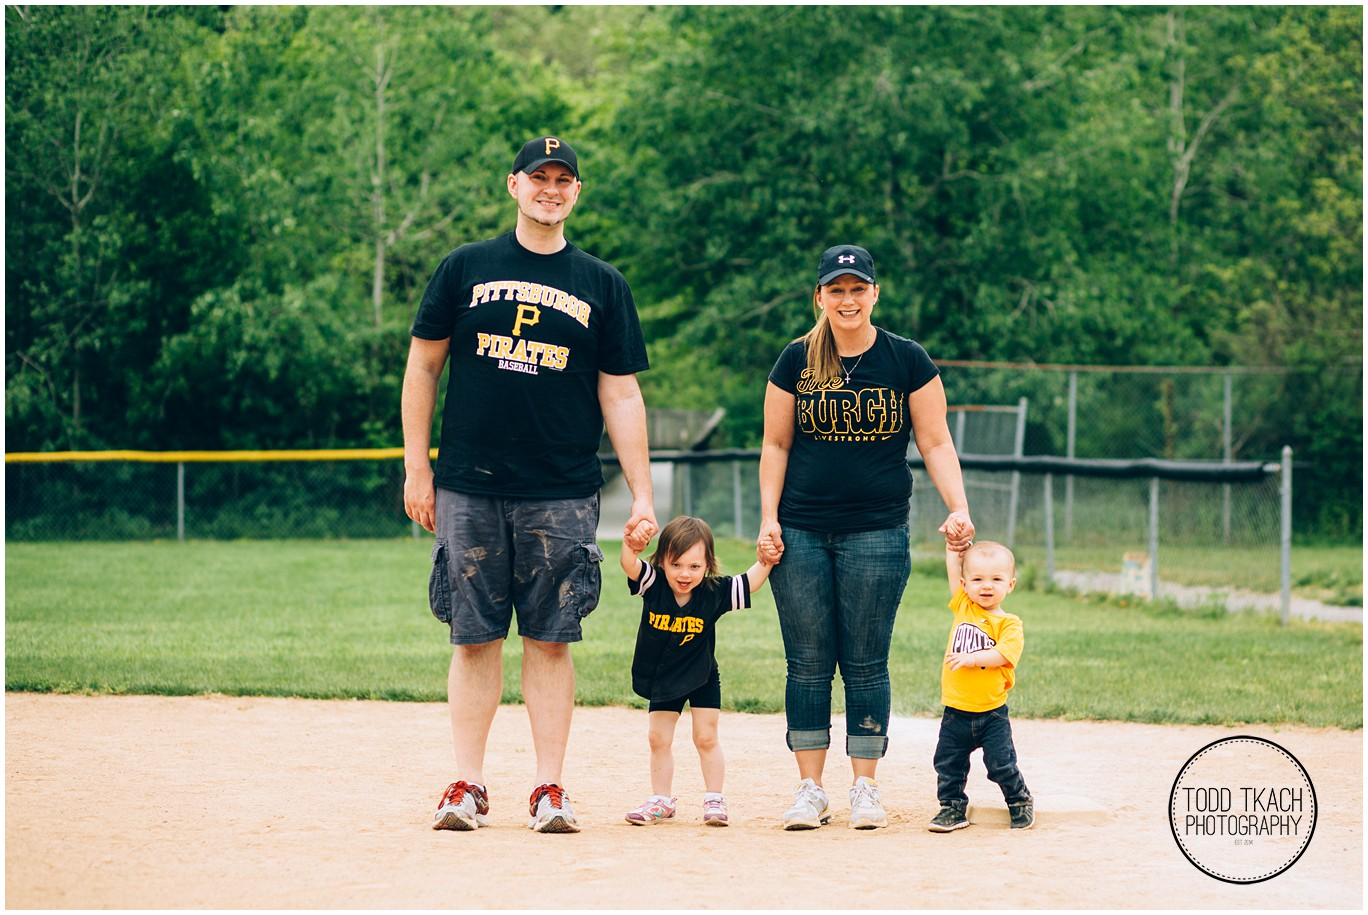 Jacob & Family Ball Field Portrait